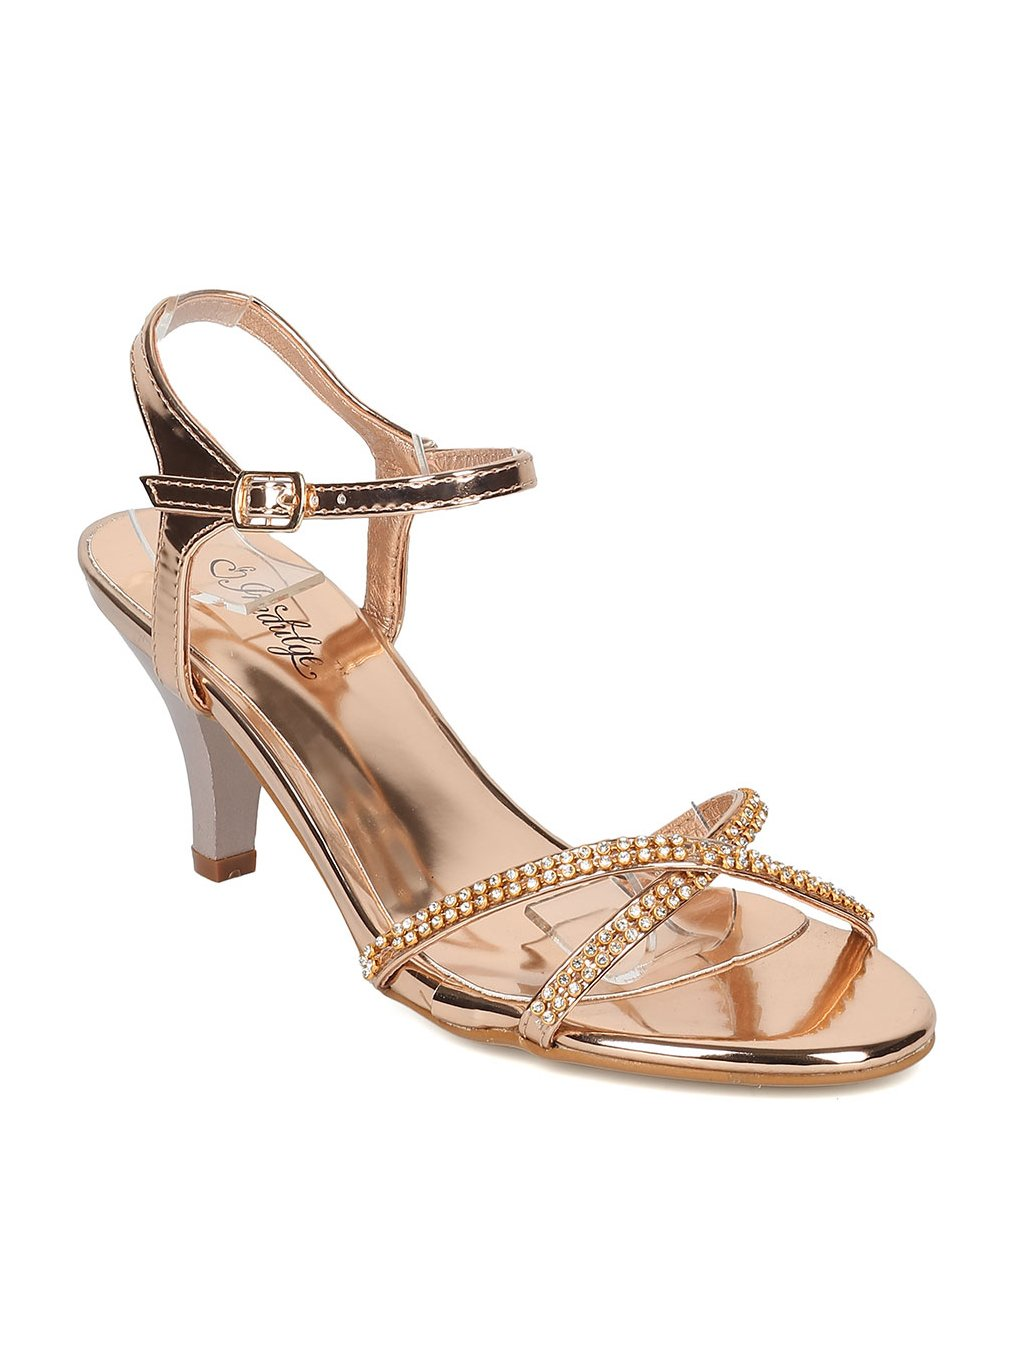 Indulge GAGA Women Metallic Leatherette Rhinestone Ankle Strap Kitten Heel Sandal HB95 - Rose Gold Metallic (Size: 6.5)